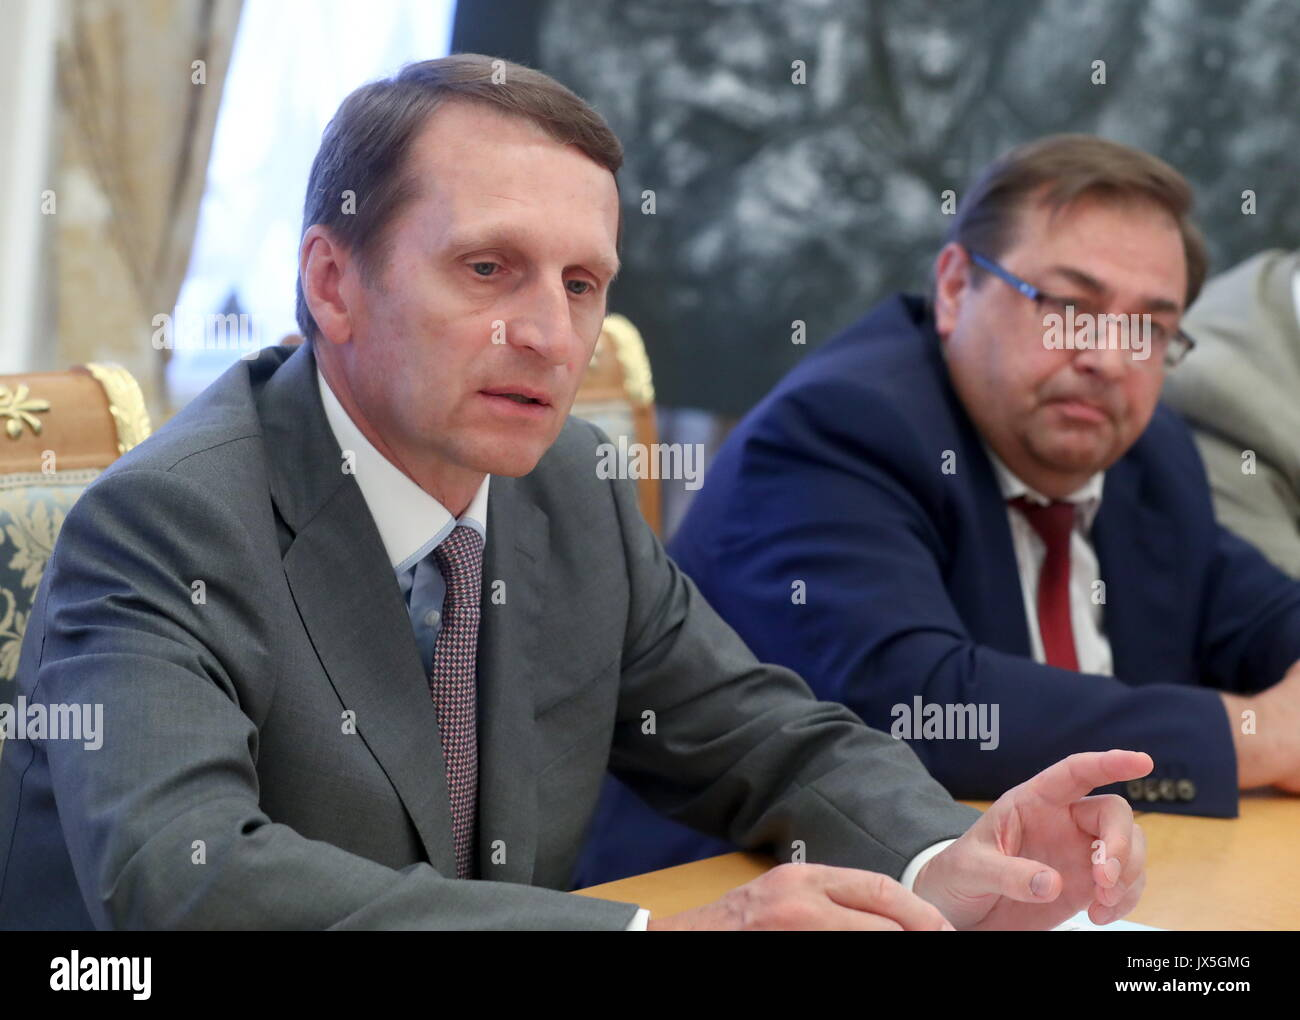 Moscow, Russia. 15th Aug, 2017. Russia's Foreign Intelligence Service Head, Russian Historical Society Chairman Sergei Naryshkin (L) and Director of the Institute of Russian History of the Russian Academy of Sciences, Istoriya Otechestva Foundation Council's presidium member Yuri Petrov attend a meeting of the Istoriya Otechestva [History of Fatherland] Foundation Council at the House of the Russian Historical Society. Credit: Stanislav Krasilnikov/TASS/Alamy Live News - Stock Image